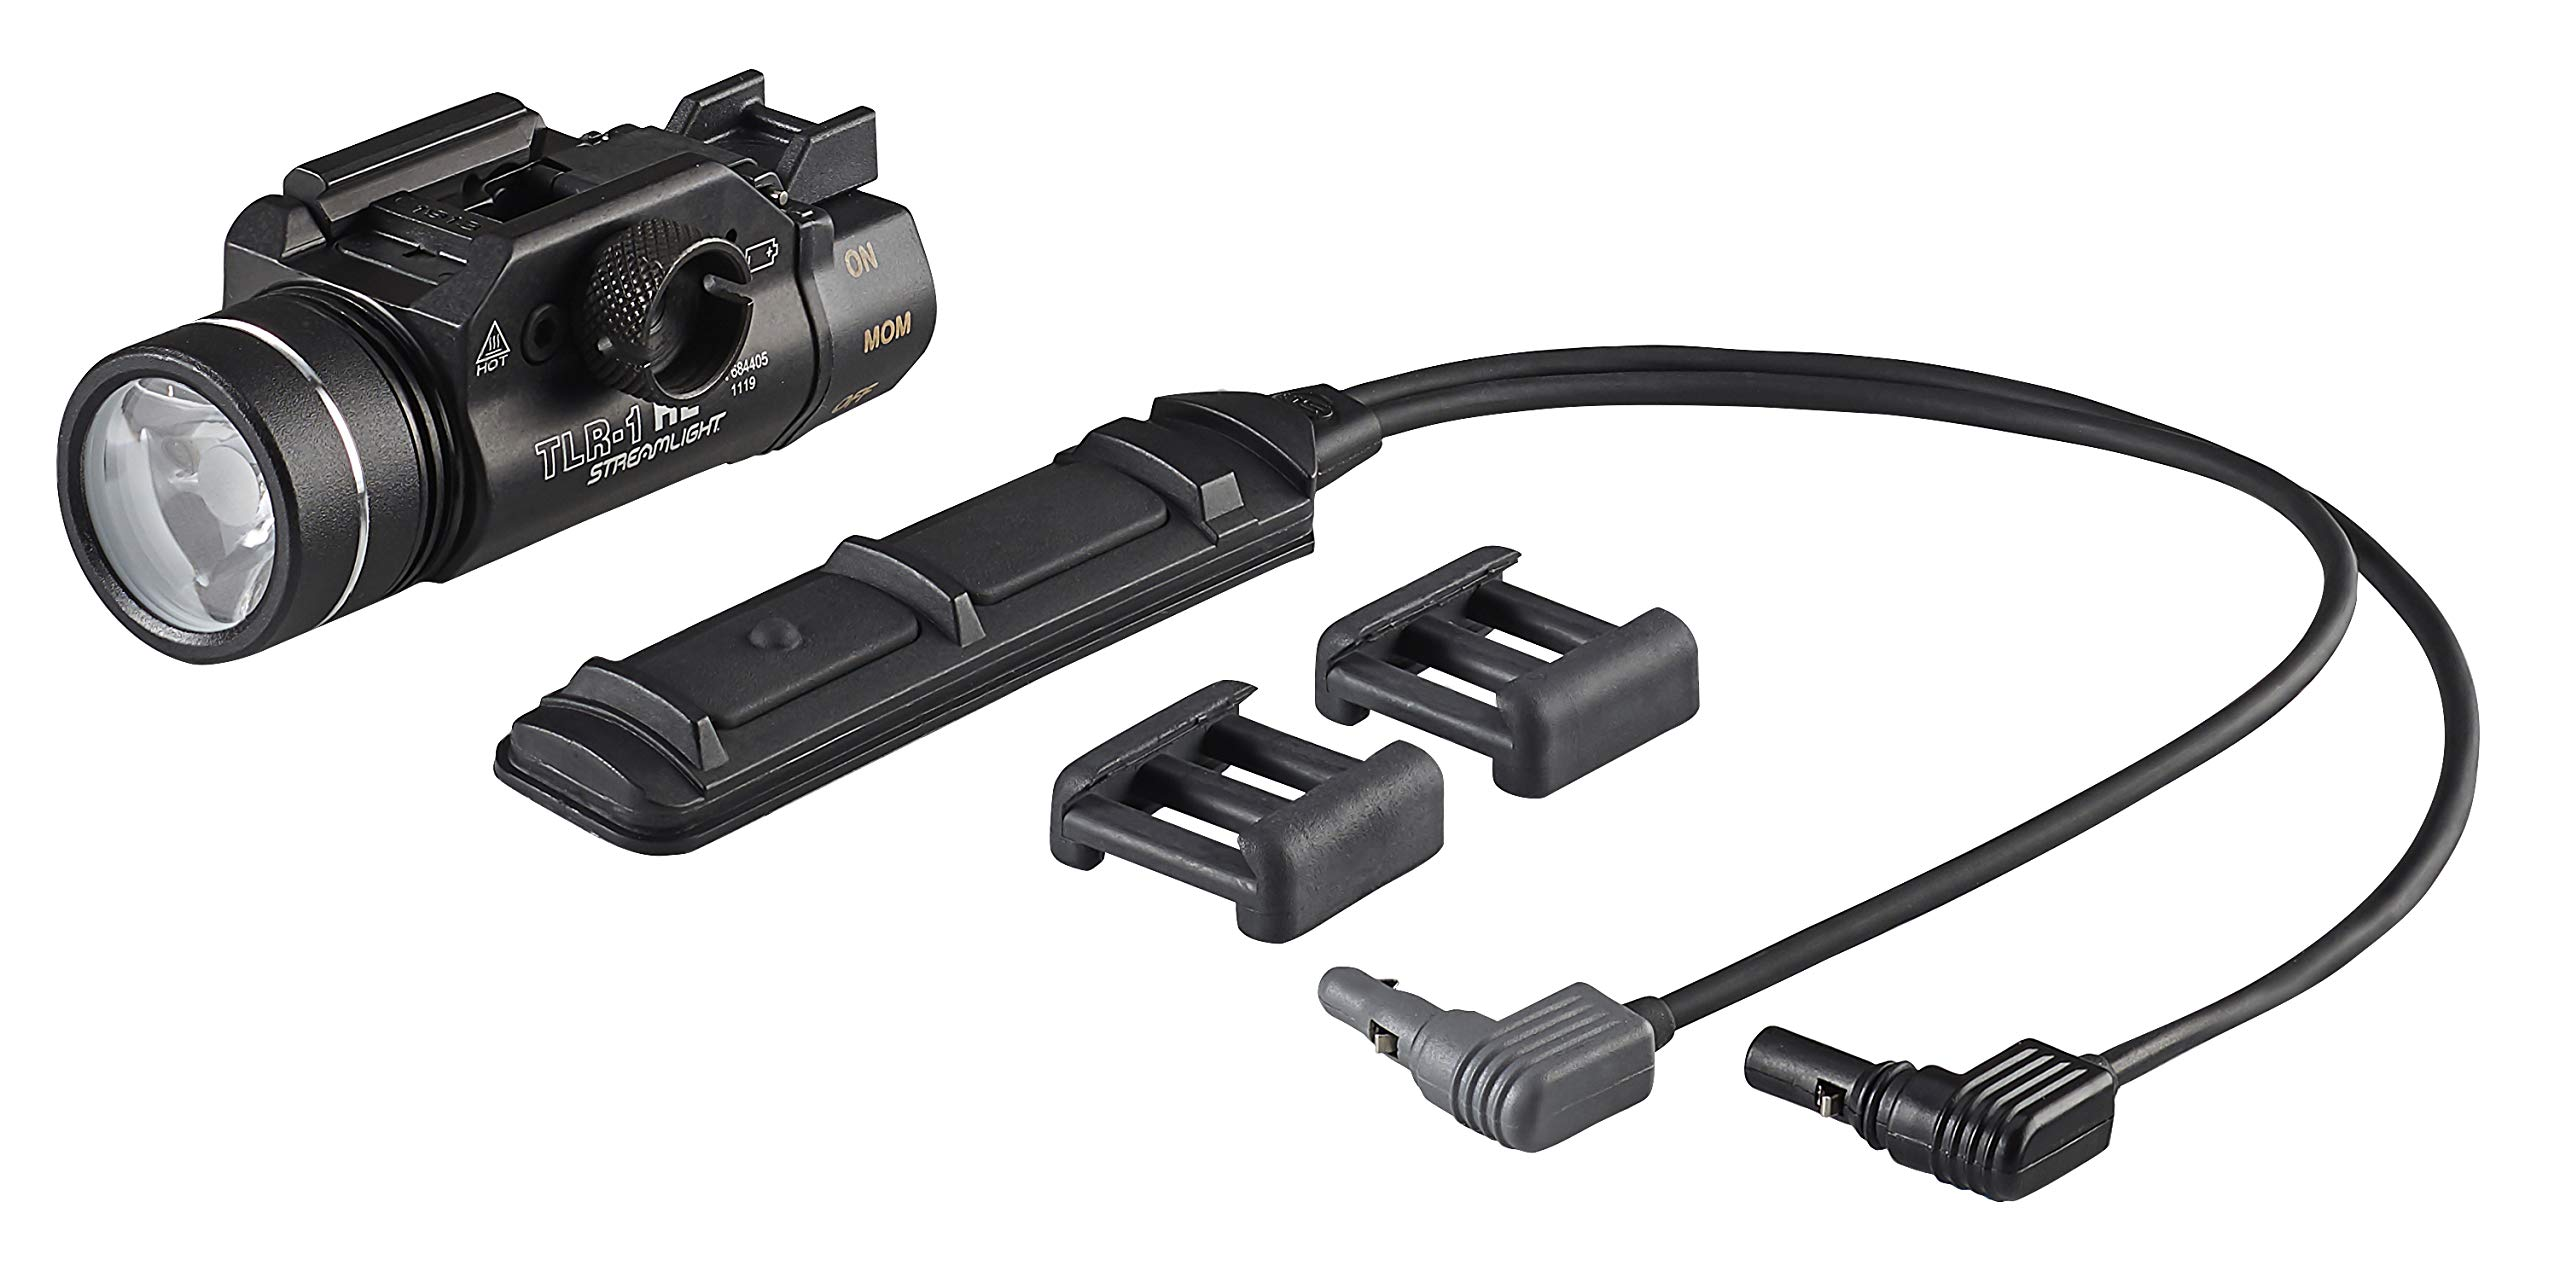 Streamlight 69889 TLR-1 HL Dual Remote Kit with Tail Cap Switch, Remote Pressure Switch, Standard Door Switch, Lithium Batteries and Mounting Clips, Black